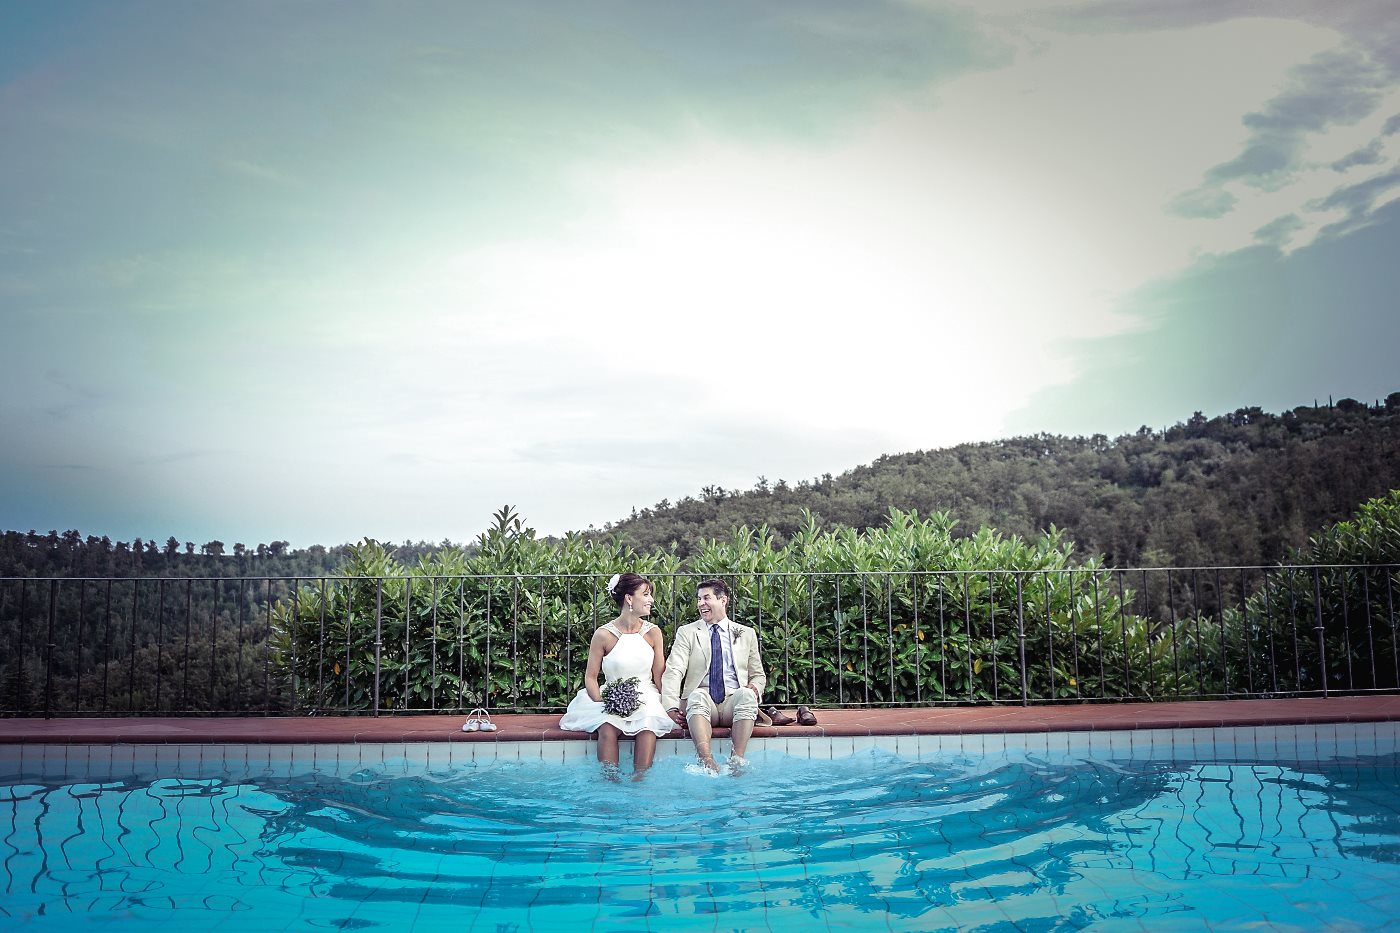 wedding photo villa dievole_17.jpg